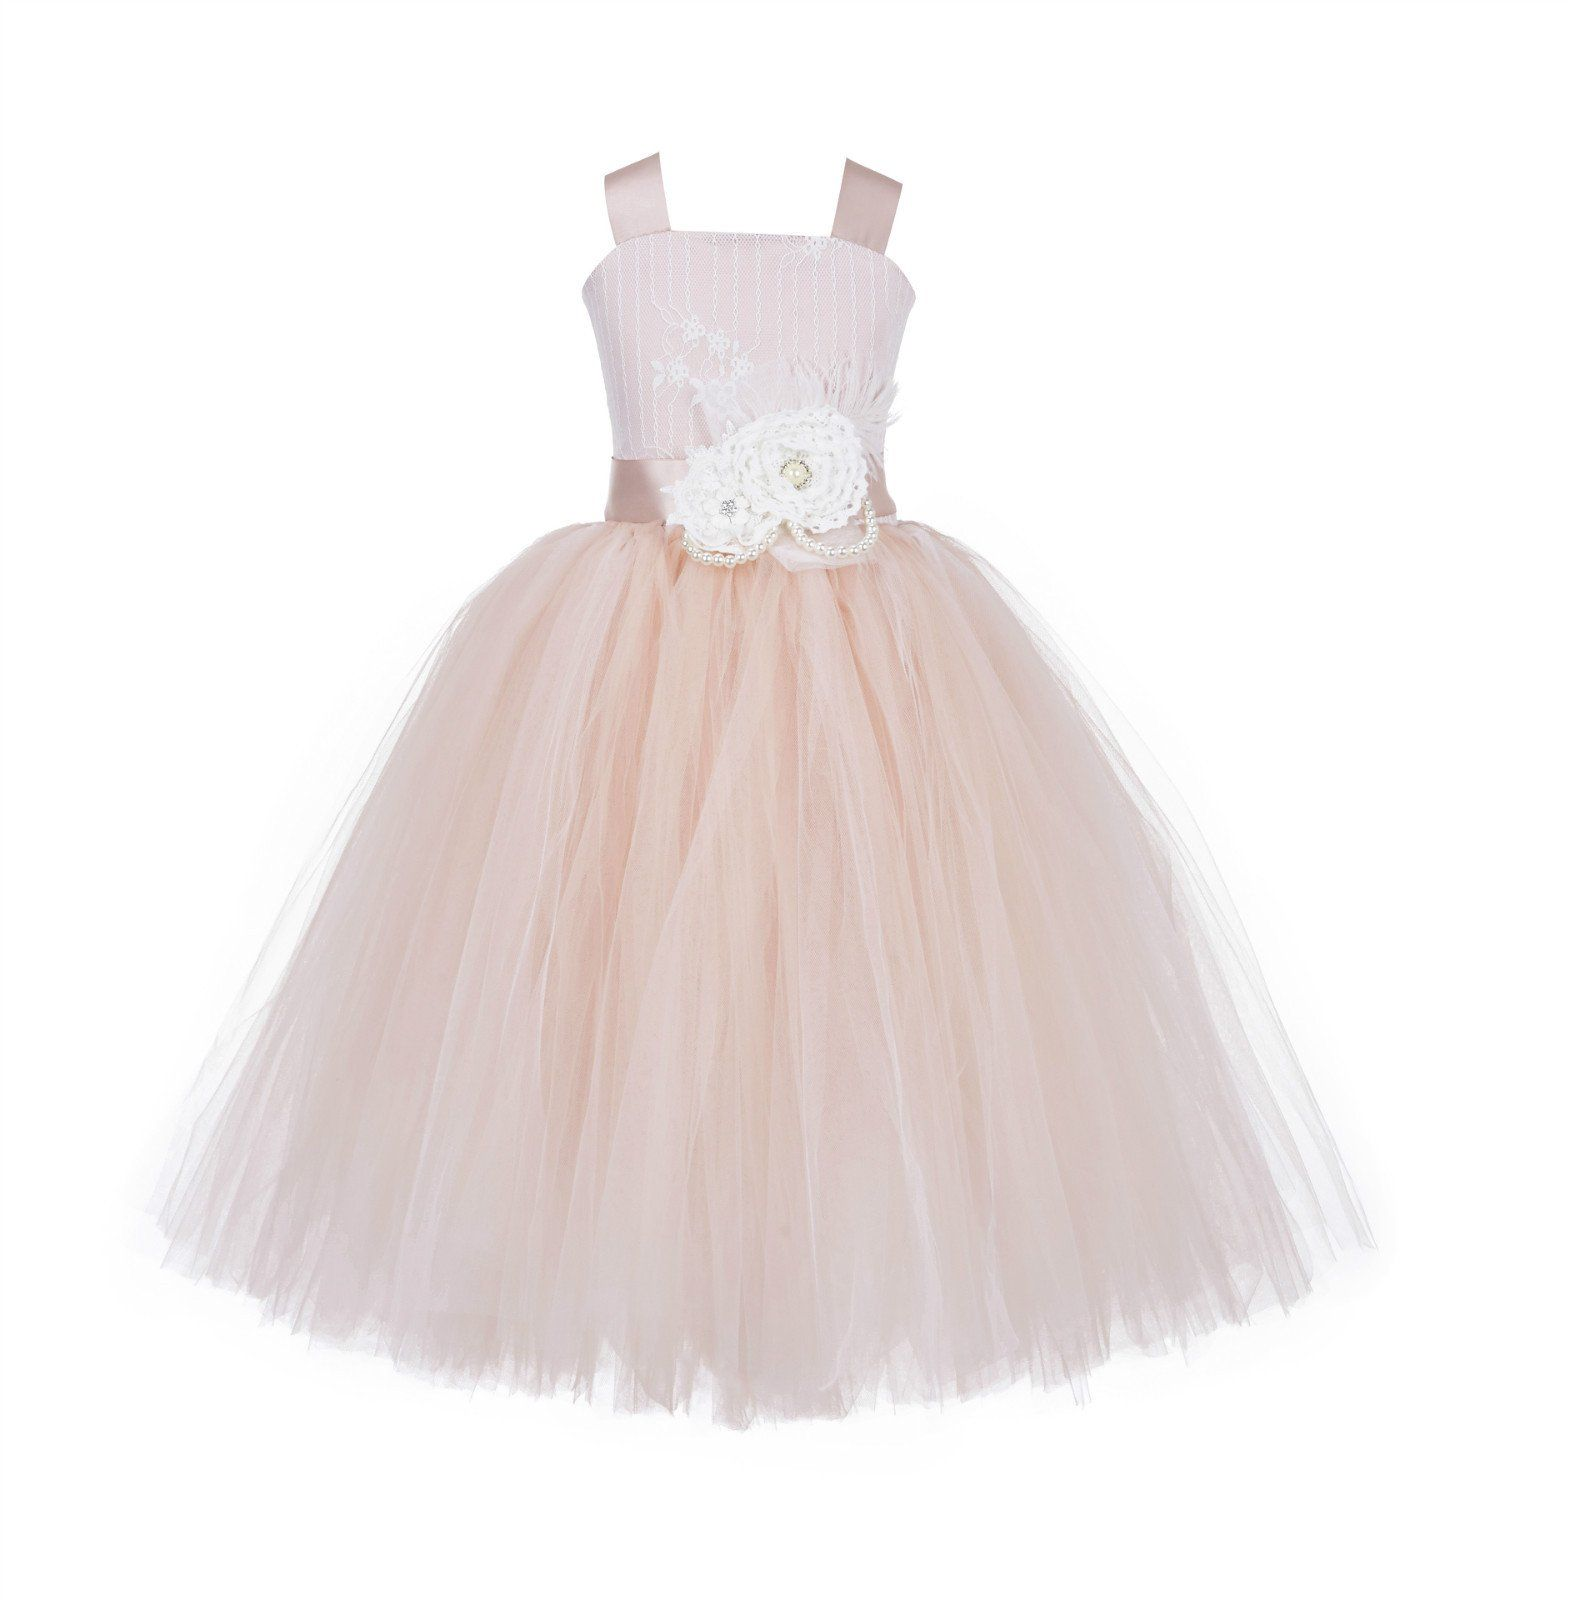 7926c45d531 Tutu Tulle Criss-Cross Back Lace Tulle Flower Girl Dress Wedding Pageant  Toddler Princess Holiday Gown Easter 119